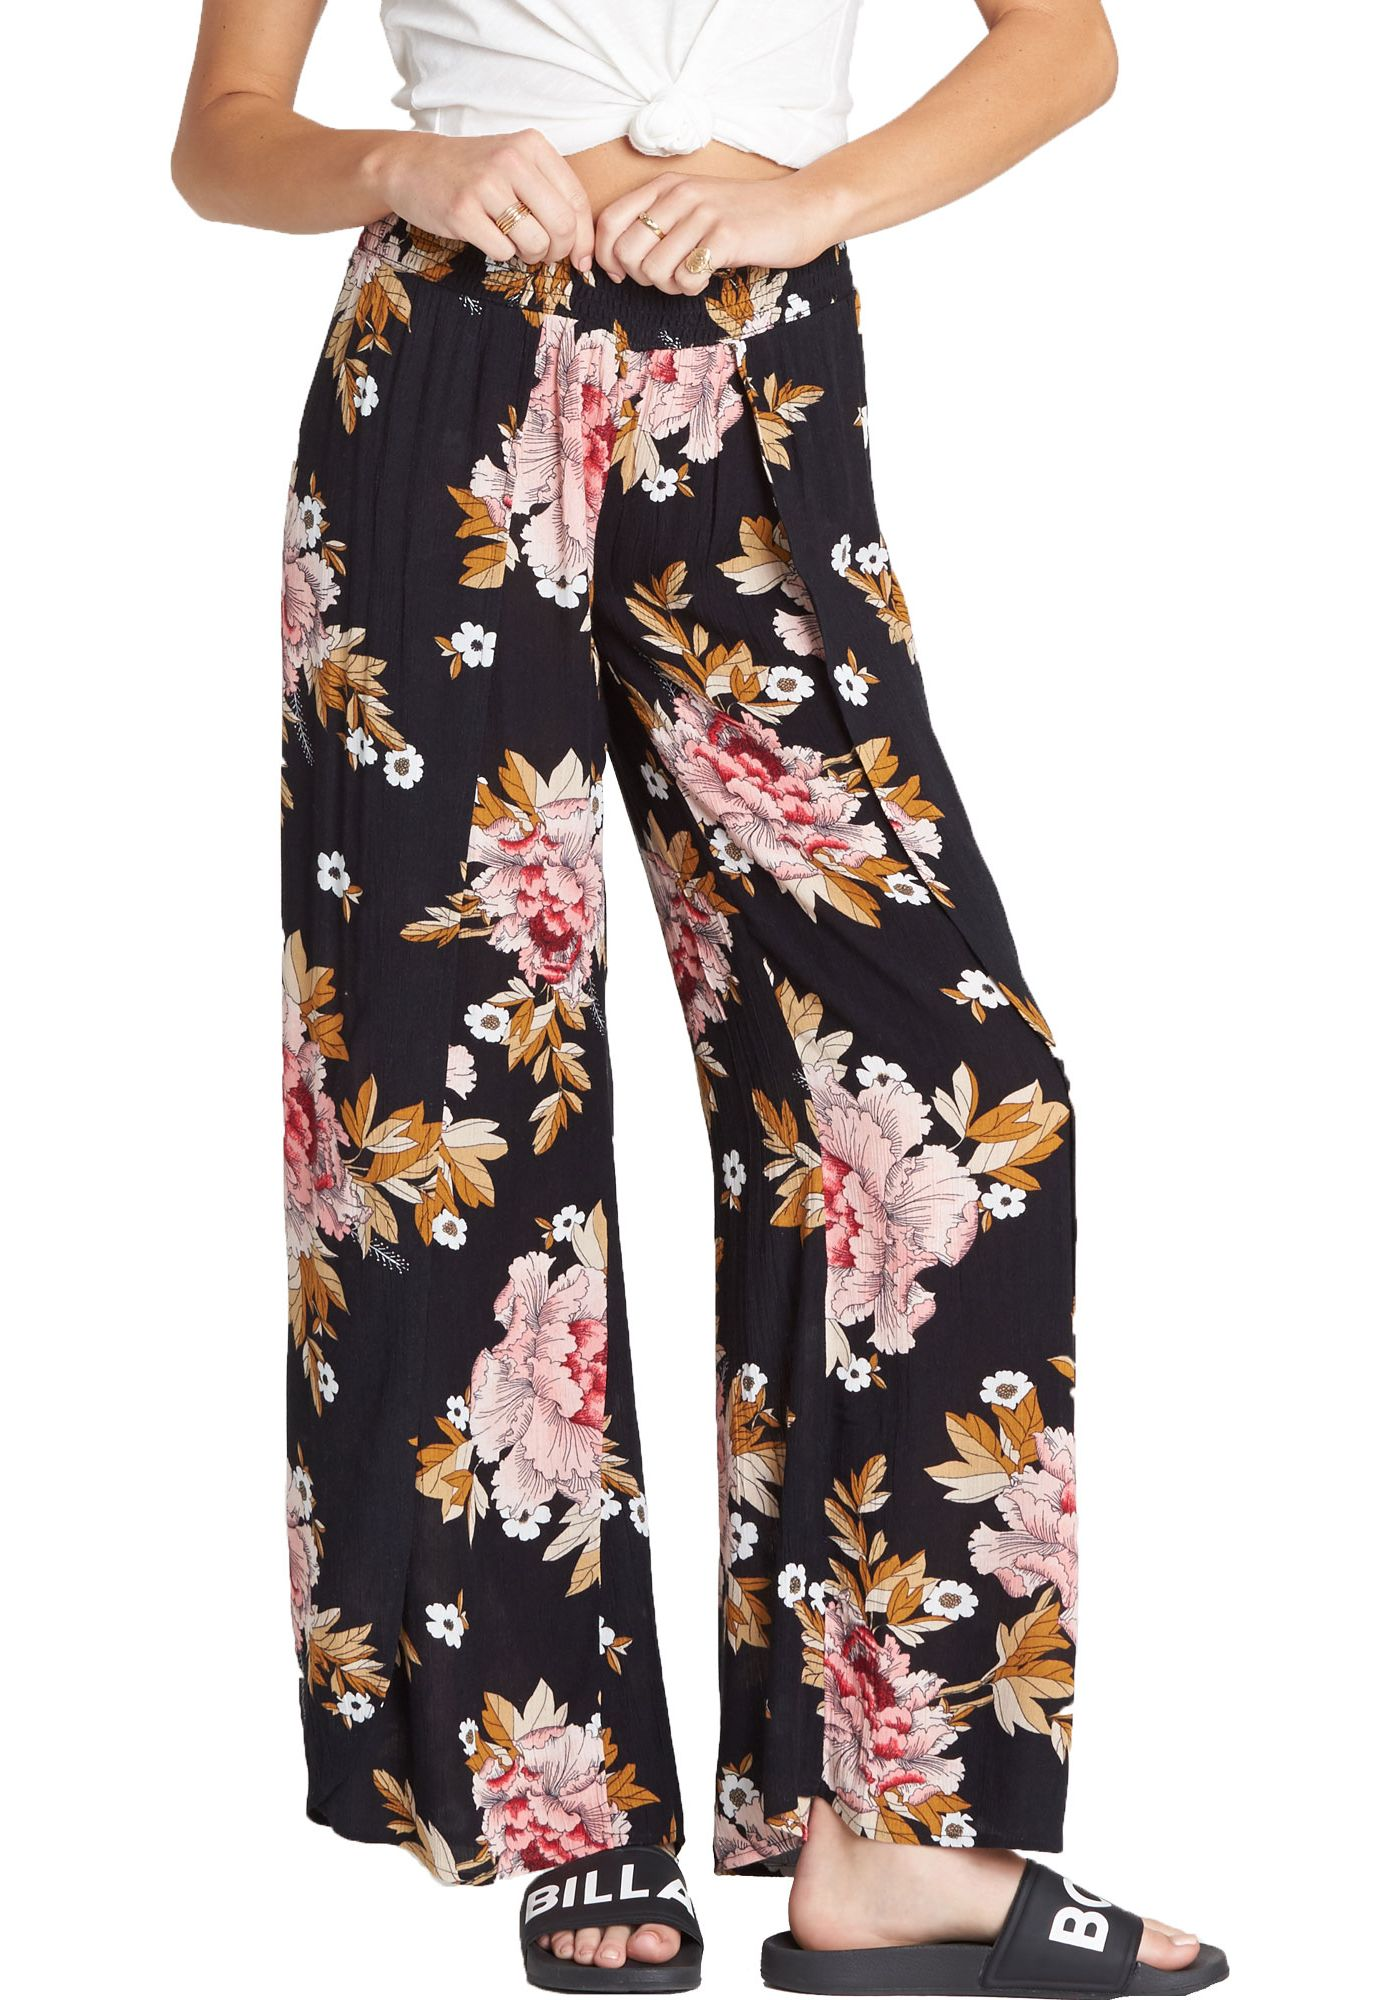 Billabong Women's Wandering Soul Wide-Leg Pants